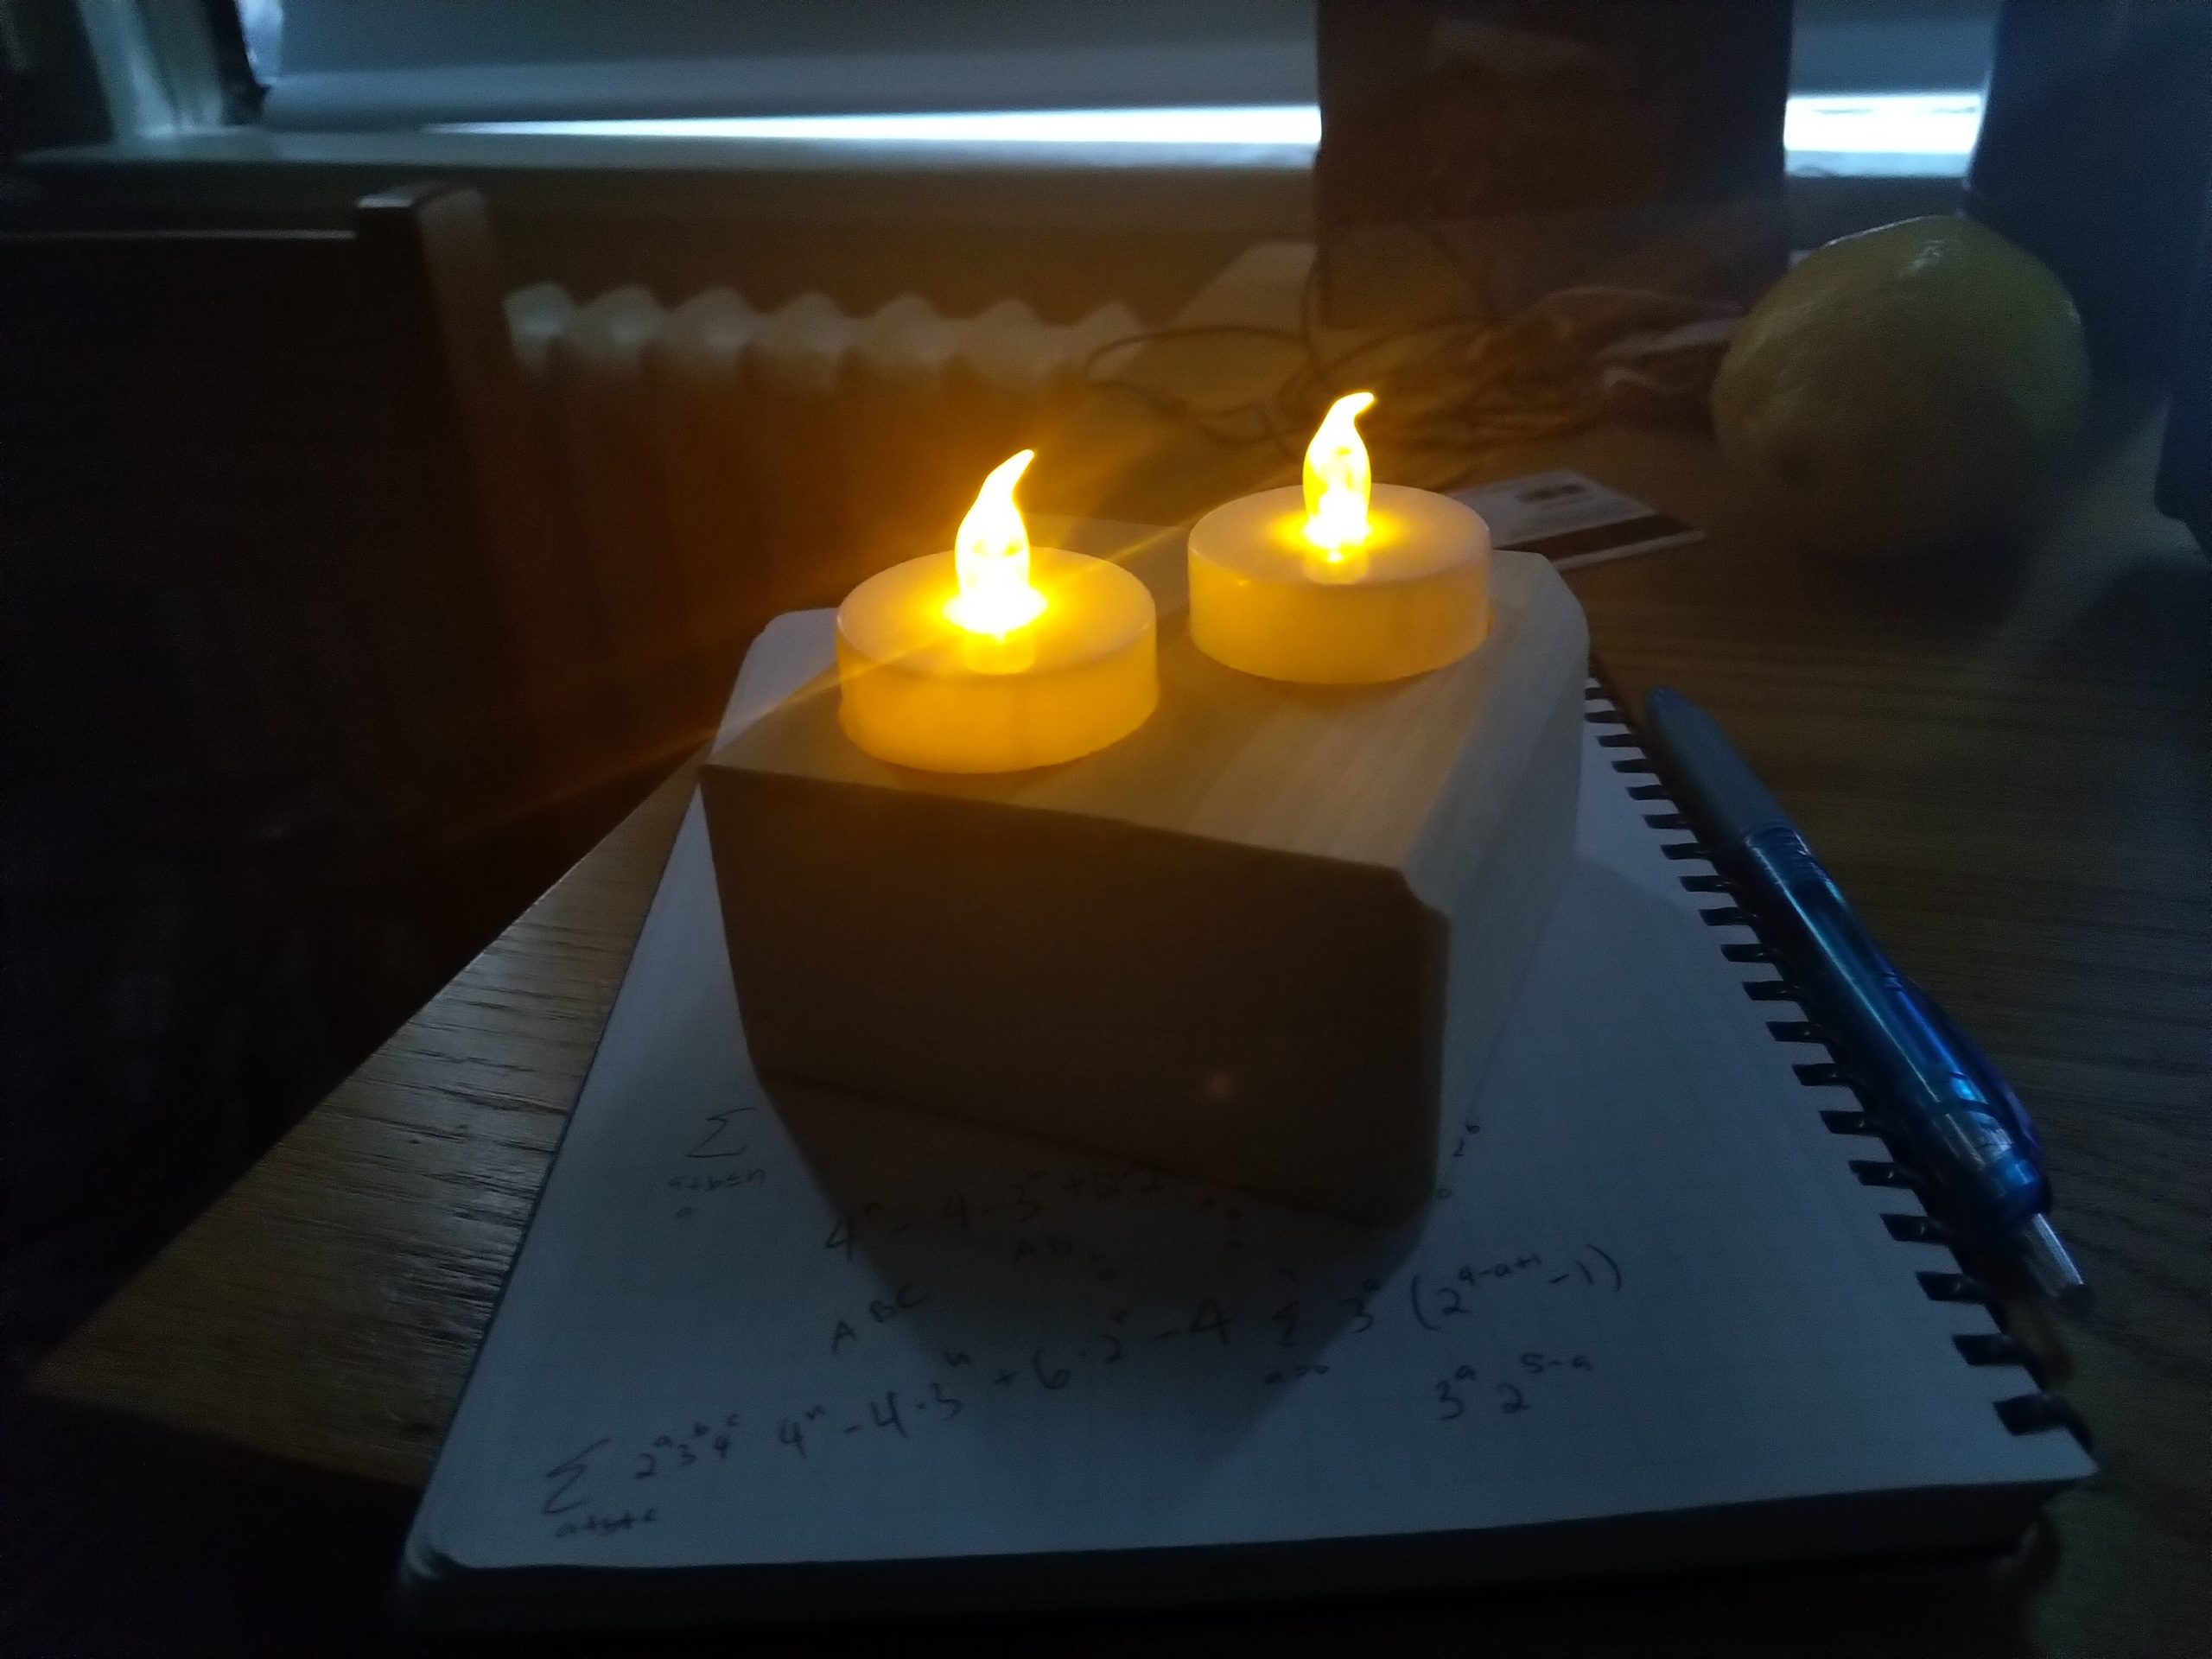 two tea lights on aforementioned tea light holder, on a notebook, in my room, with light peeping in from the not-quite-fully-covered window